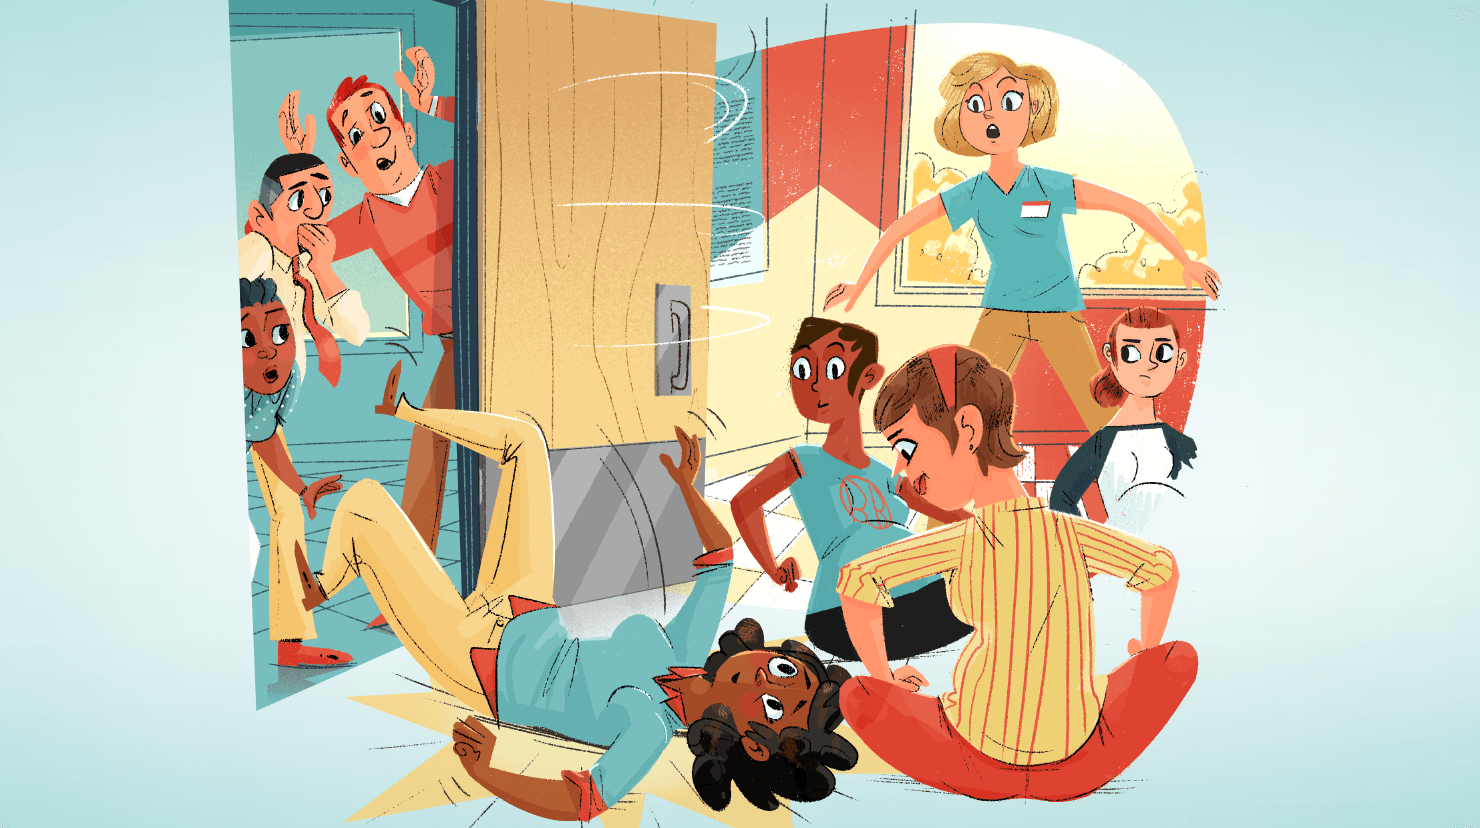 Illustration of woman fall through door into room of expectant mothers